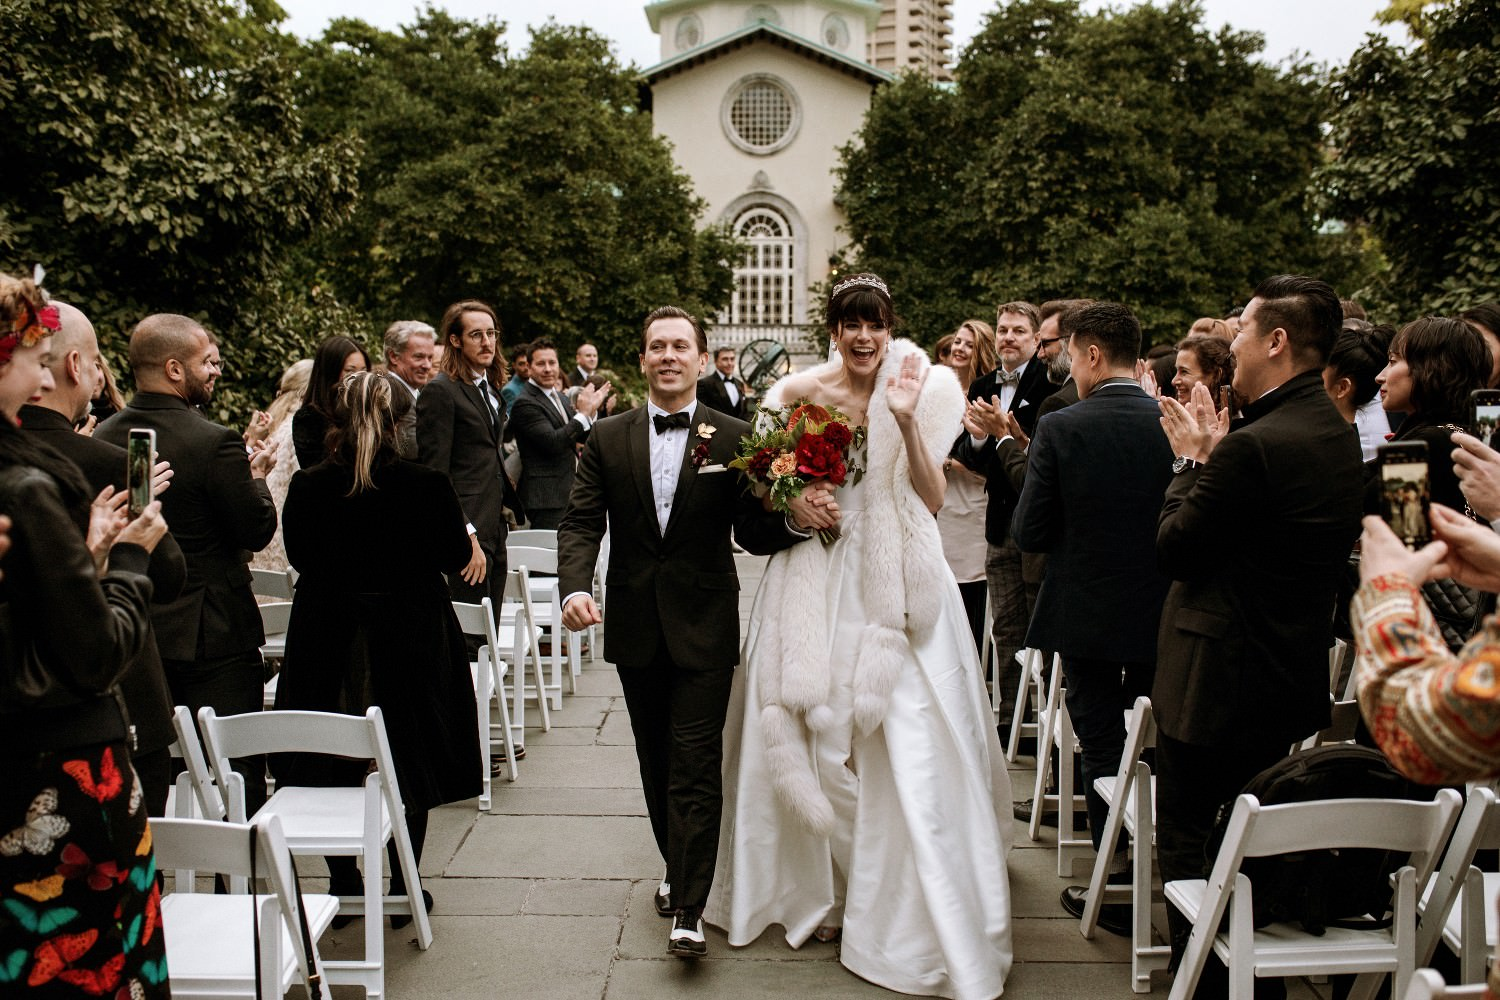 Wedding couple walks down the aisle after their wedding ceremony at the Brooklyn Botanic Garden